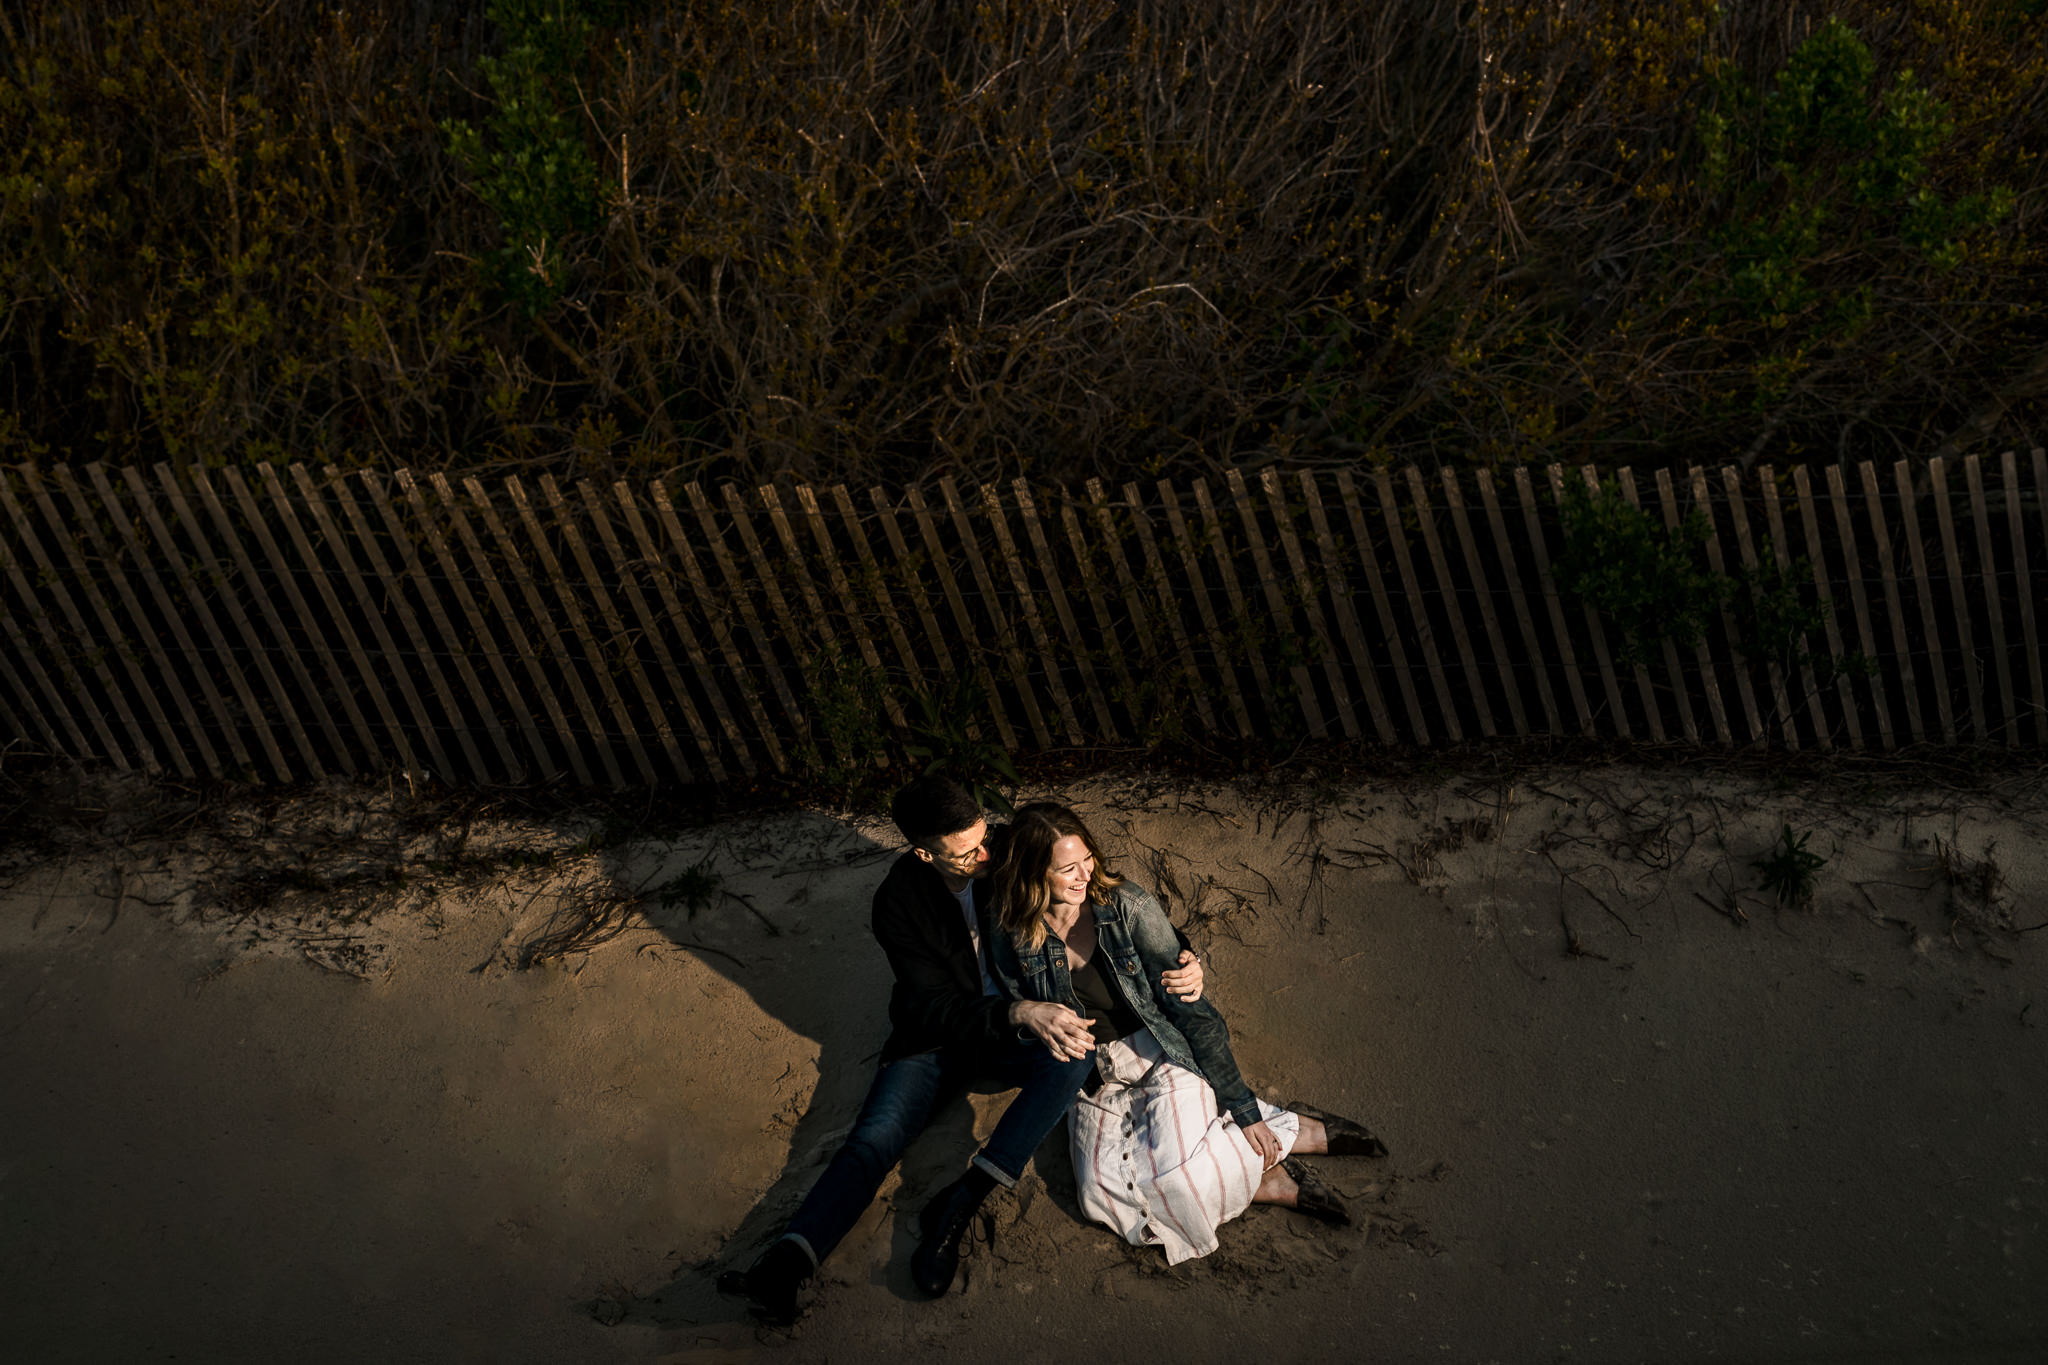 Robbins-Wildwood-Cape-May-Engagement-Photos-NJ-Photographer-14.JPG